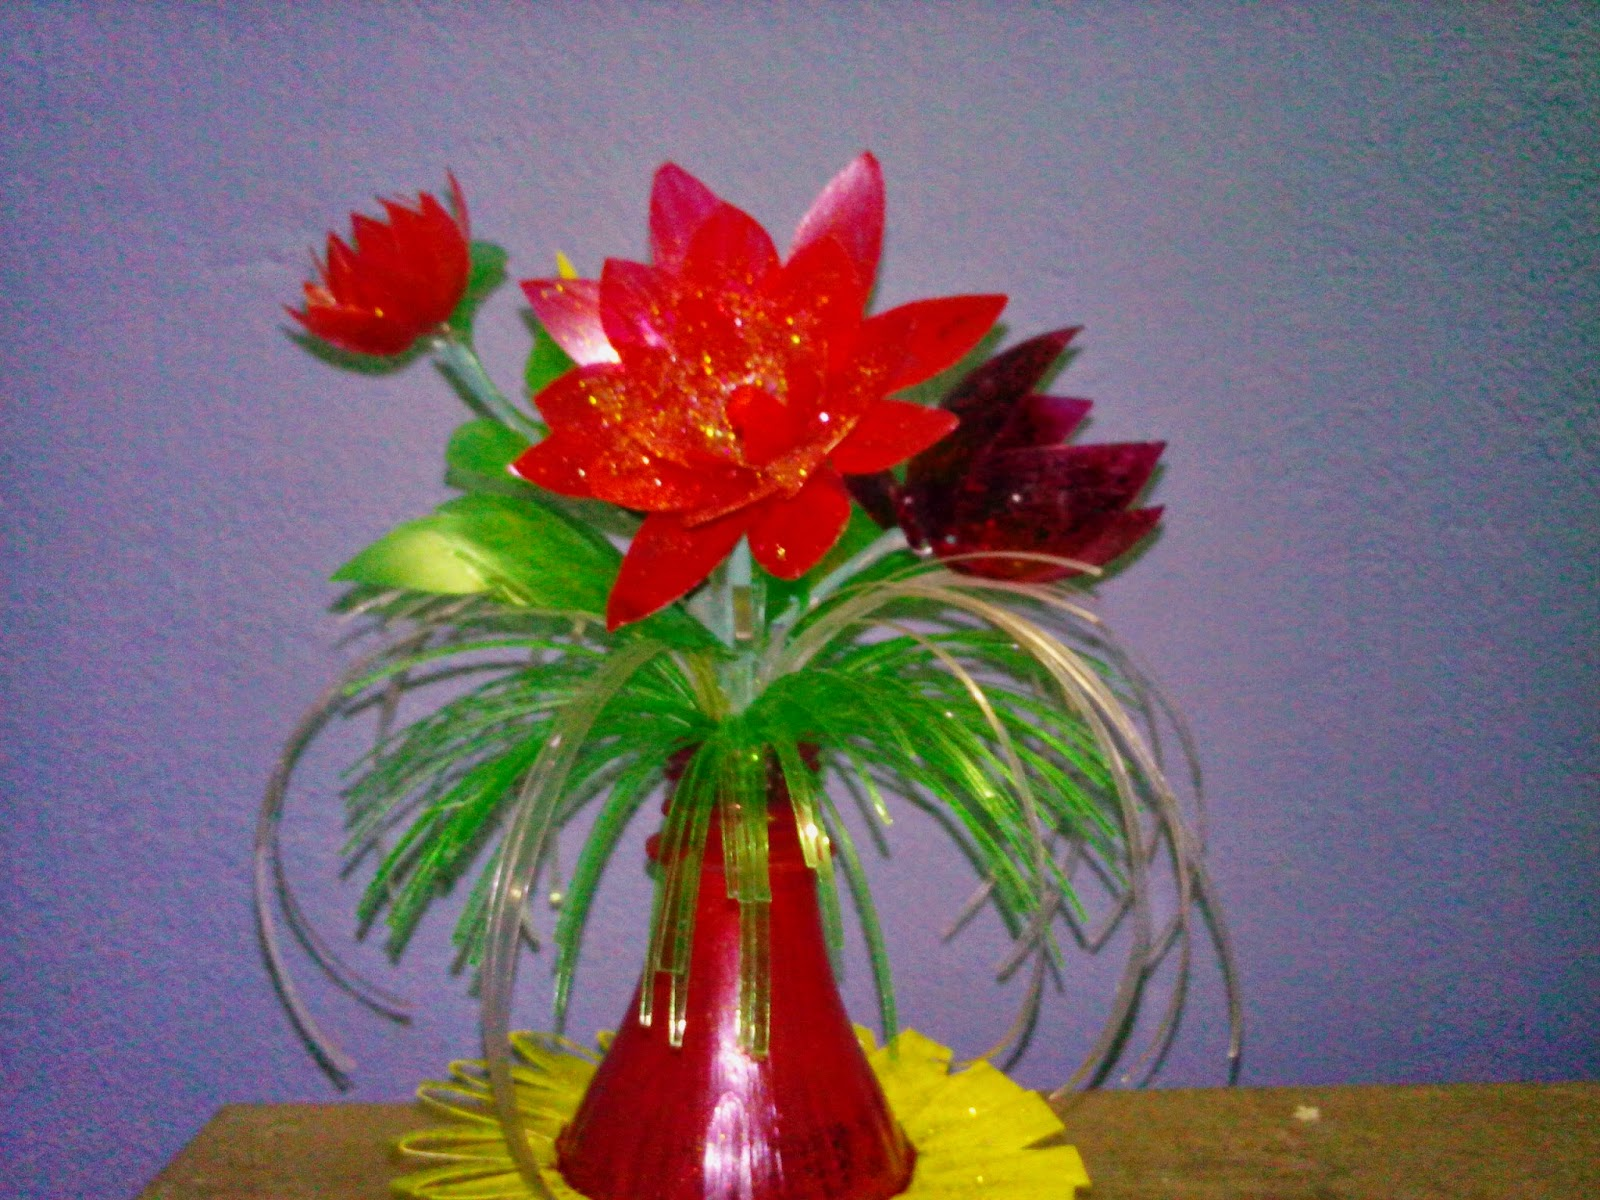 Recycling Bottles (How To Make It A Nice Flower Vase In A Very Easy Way